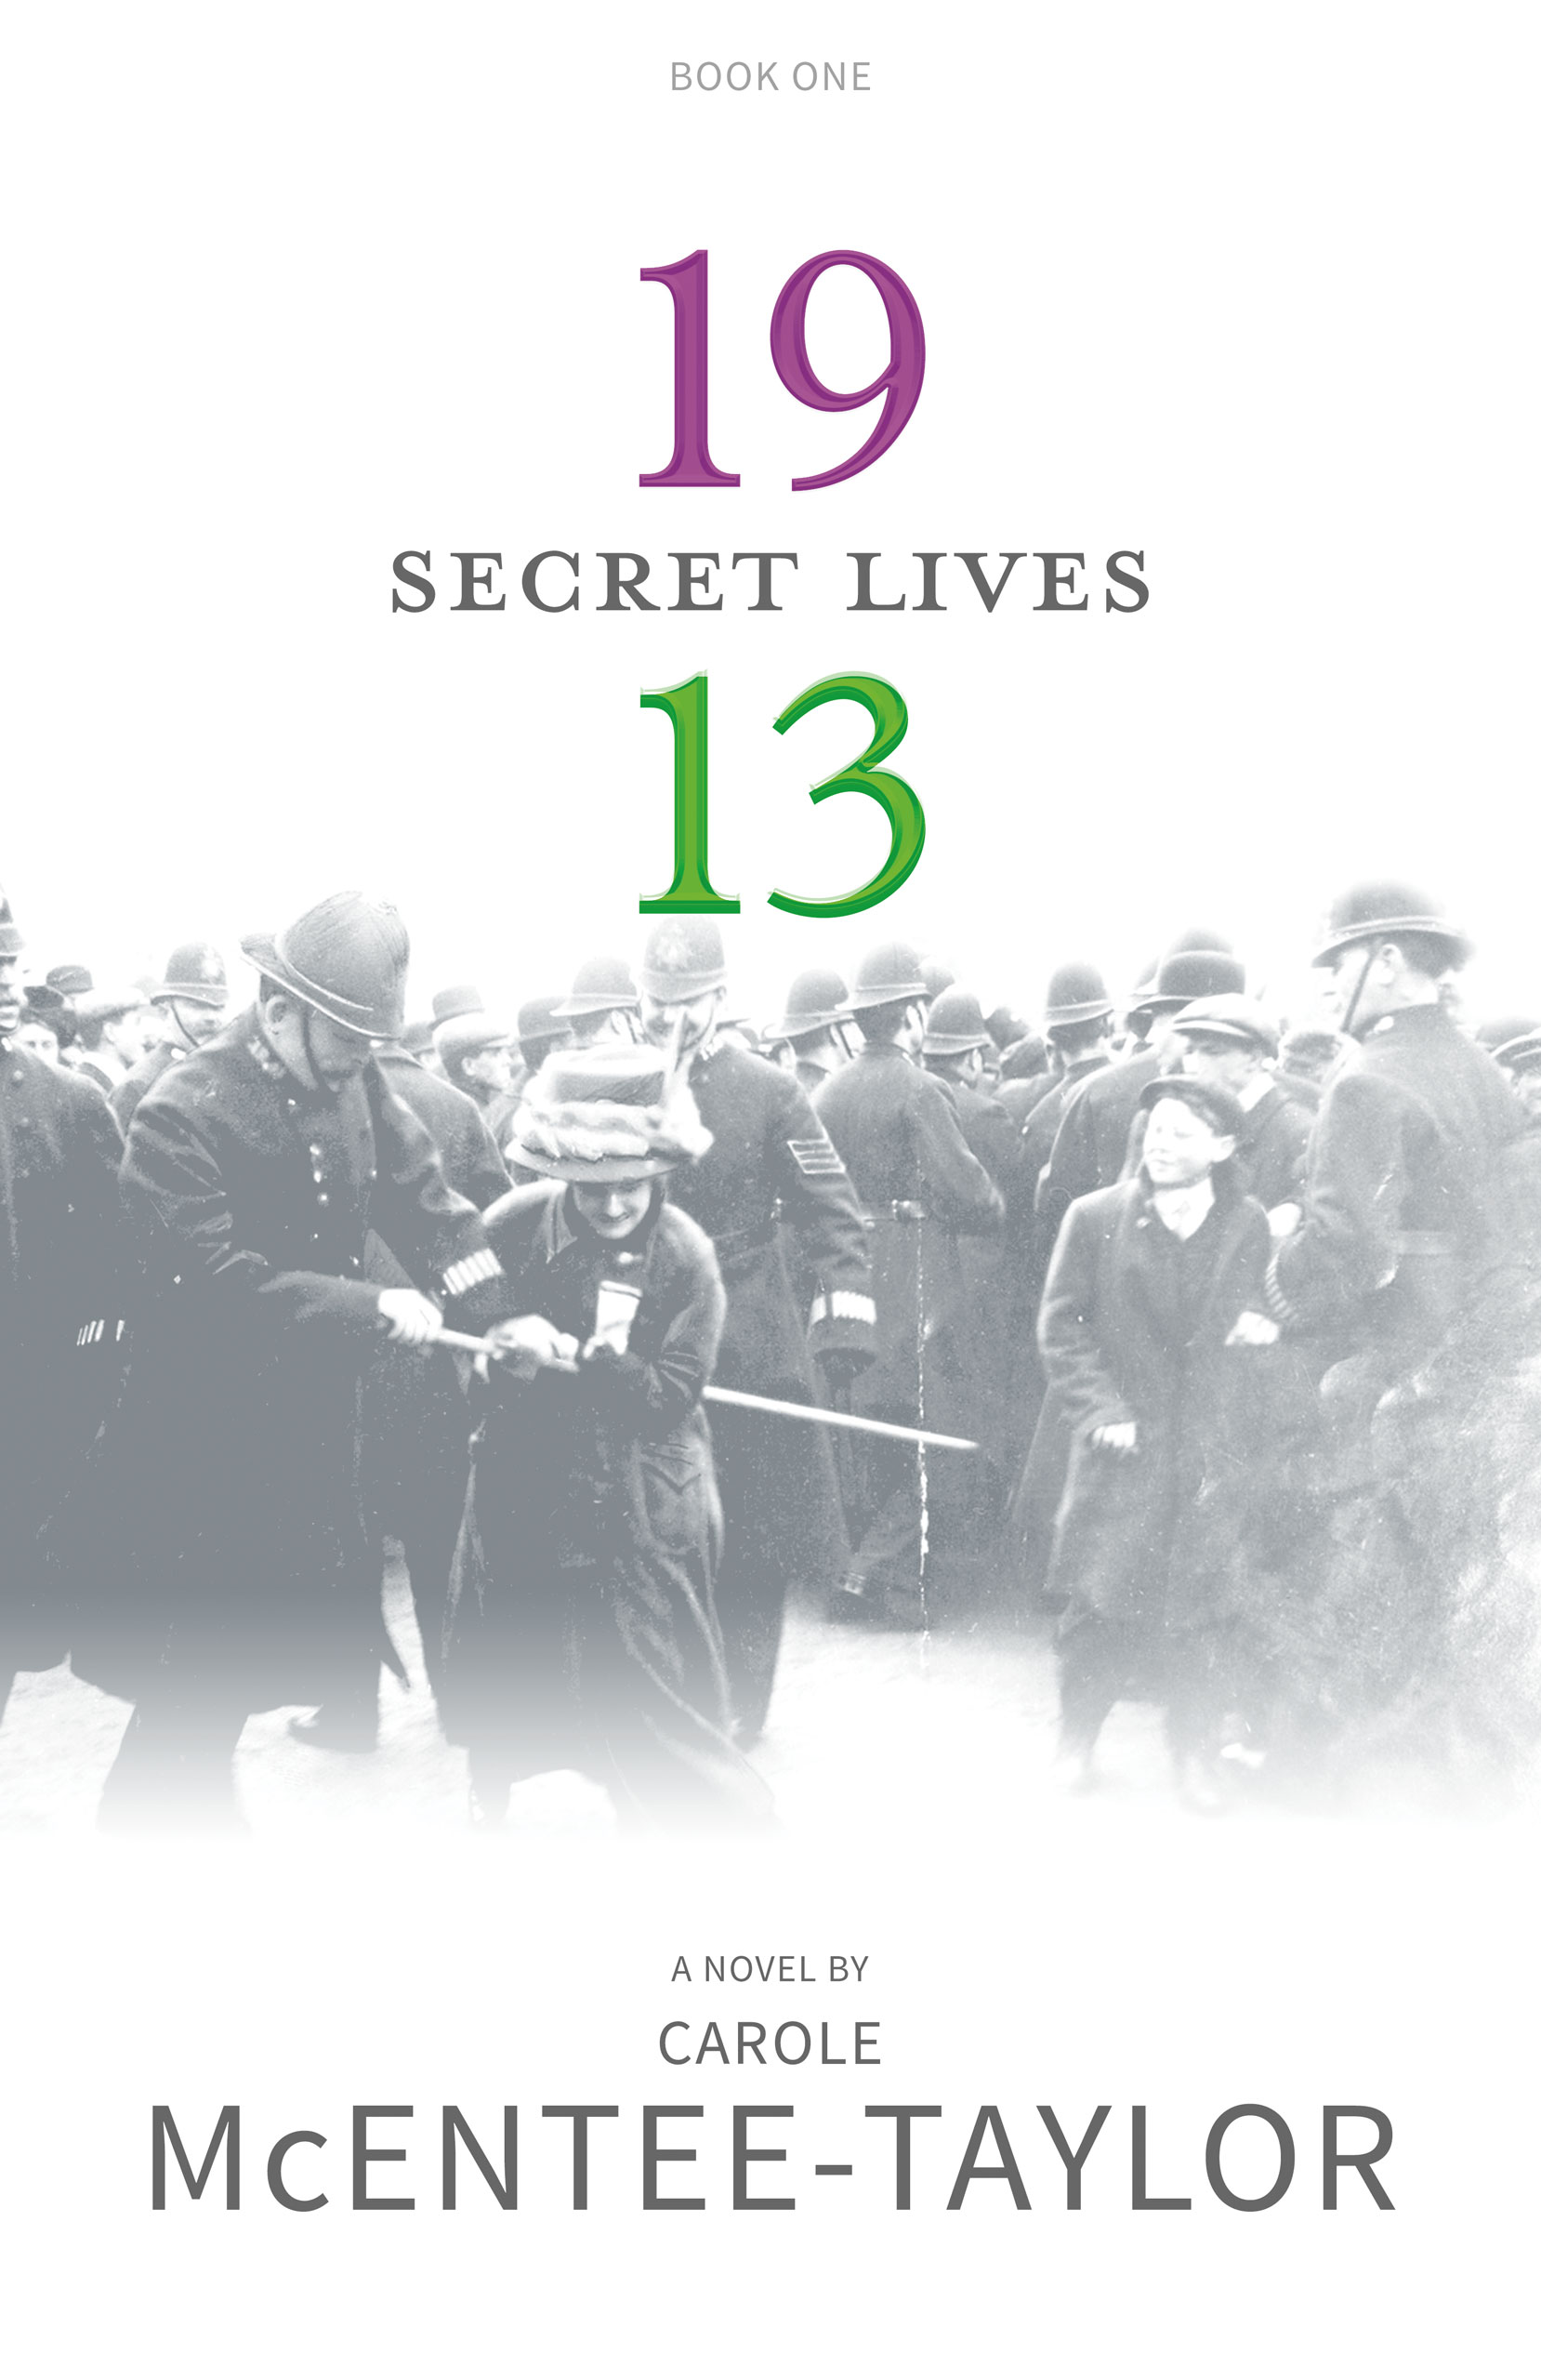 Secret Lives - 1913 Book One by Carole McEntee-Taylor cover image.